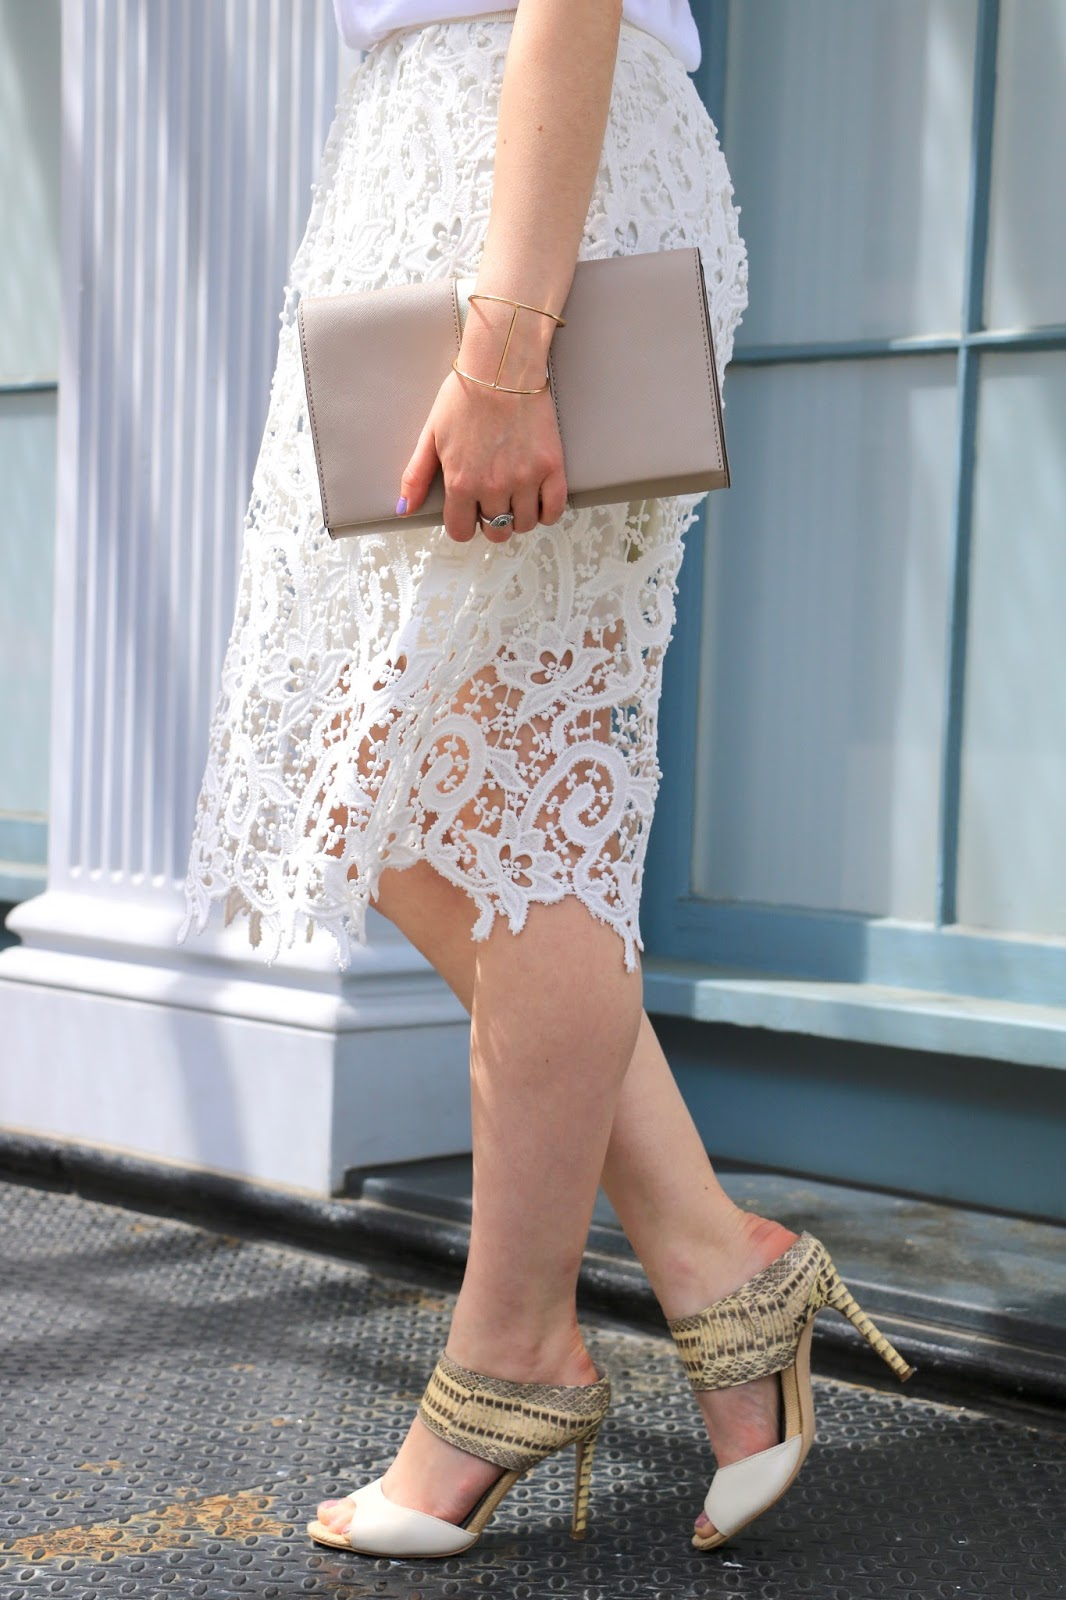 nyc fashion blogger Kathleen Harper wearing a white lace pencil skirt with white heeled mules